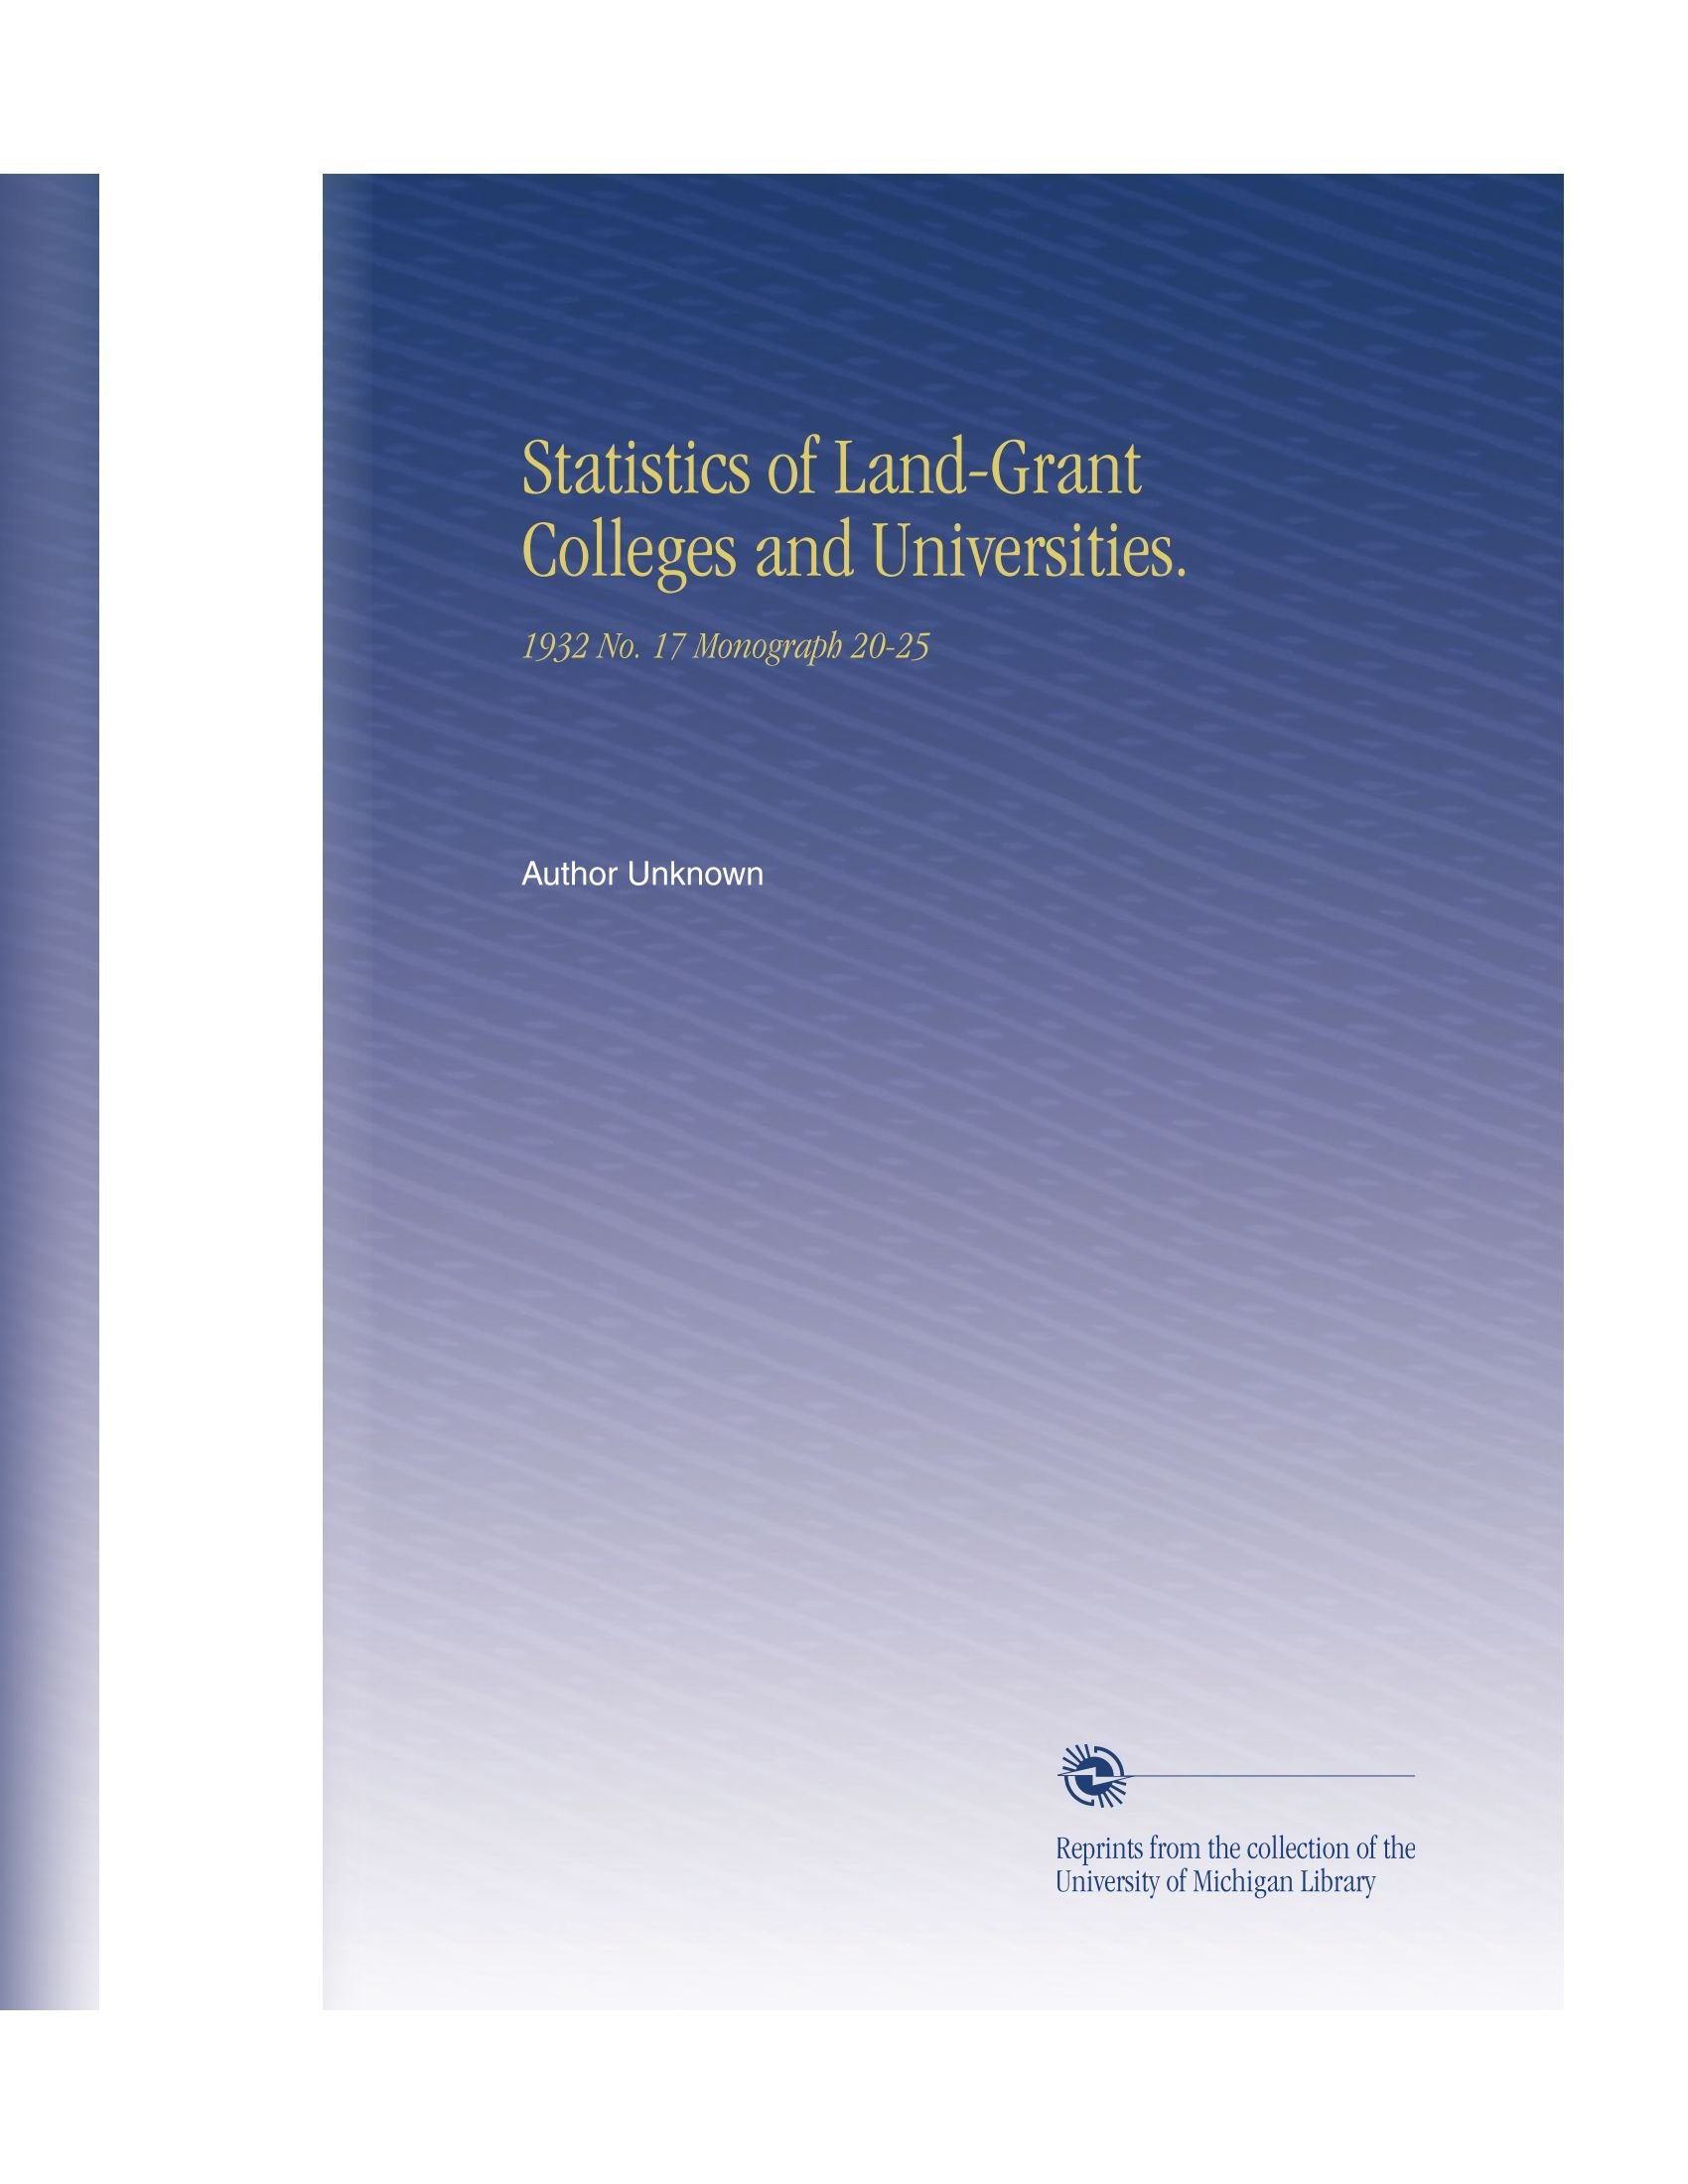 Download Statistics of Land-Grant Colleges and Universities.: 1932 No. 17 Monograph 20-25 pdf epub